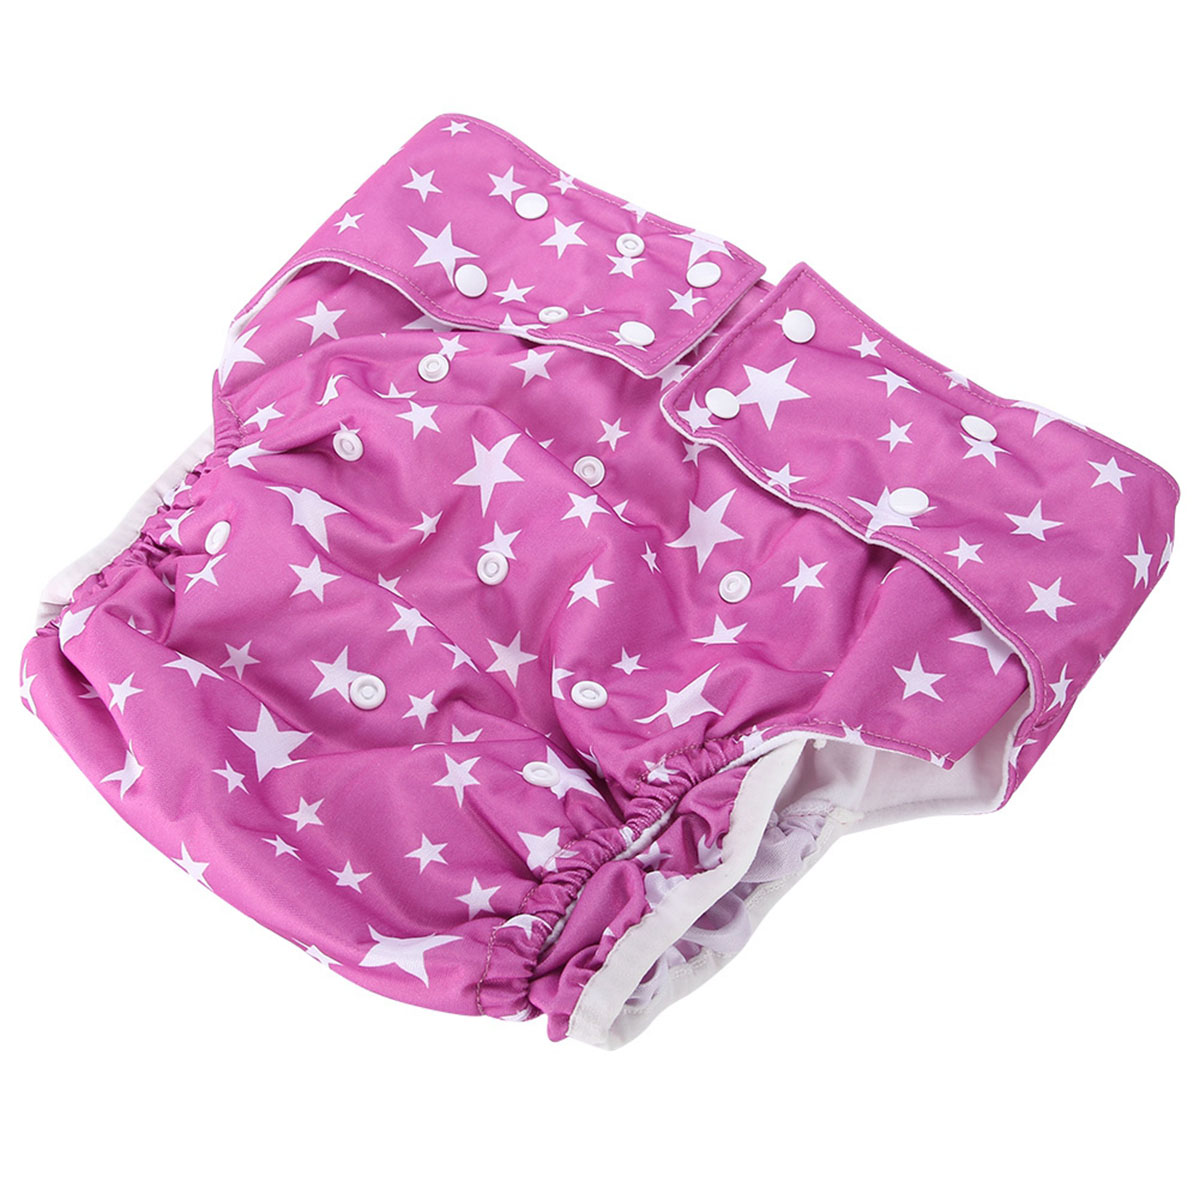 Adult Diaper Nappy Pants Washable Reusable Adjustable Diaper For Disability Incontinence The Elderly Washable Diapers